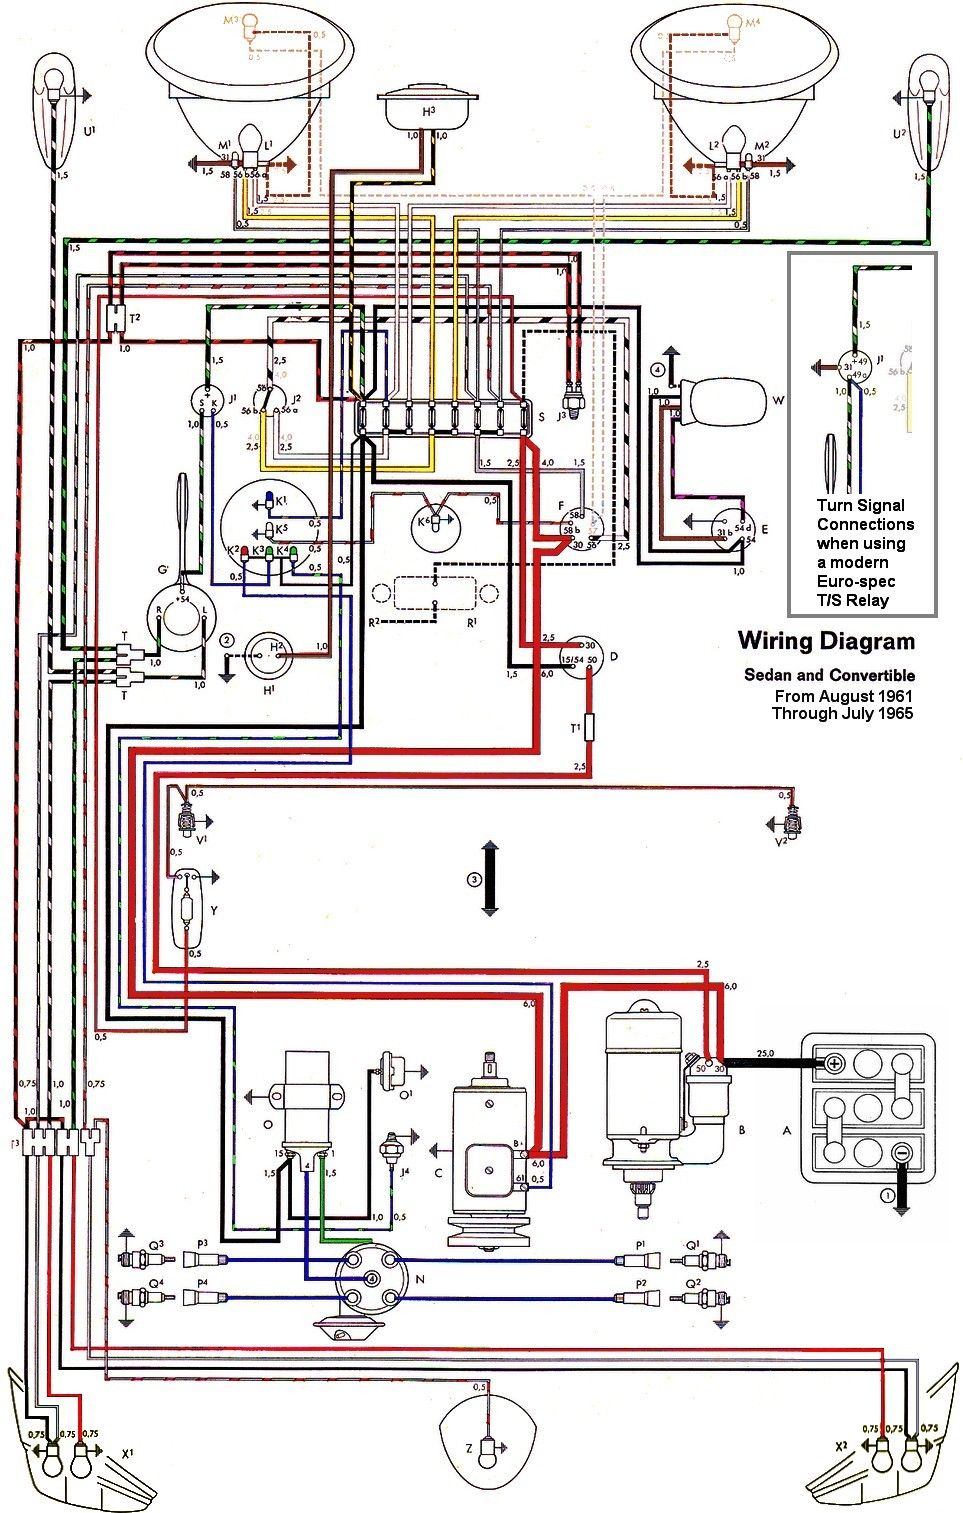 1973 vw bug wiring harness wiring diagrams best 1973 vw wiring harness wiring diagram data 1973 corvette wiring harness 1973 vw bug wiring harness